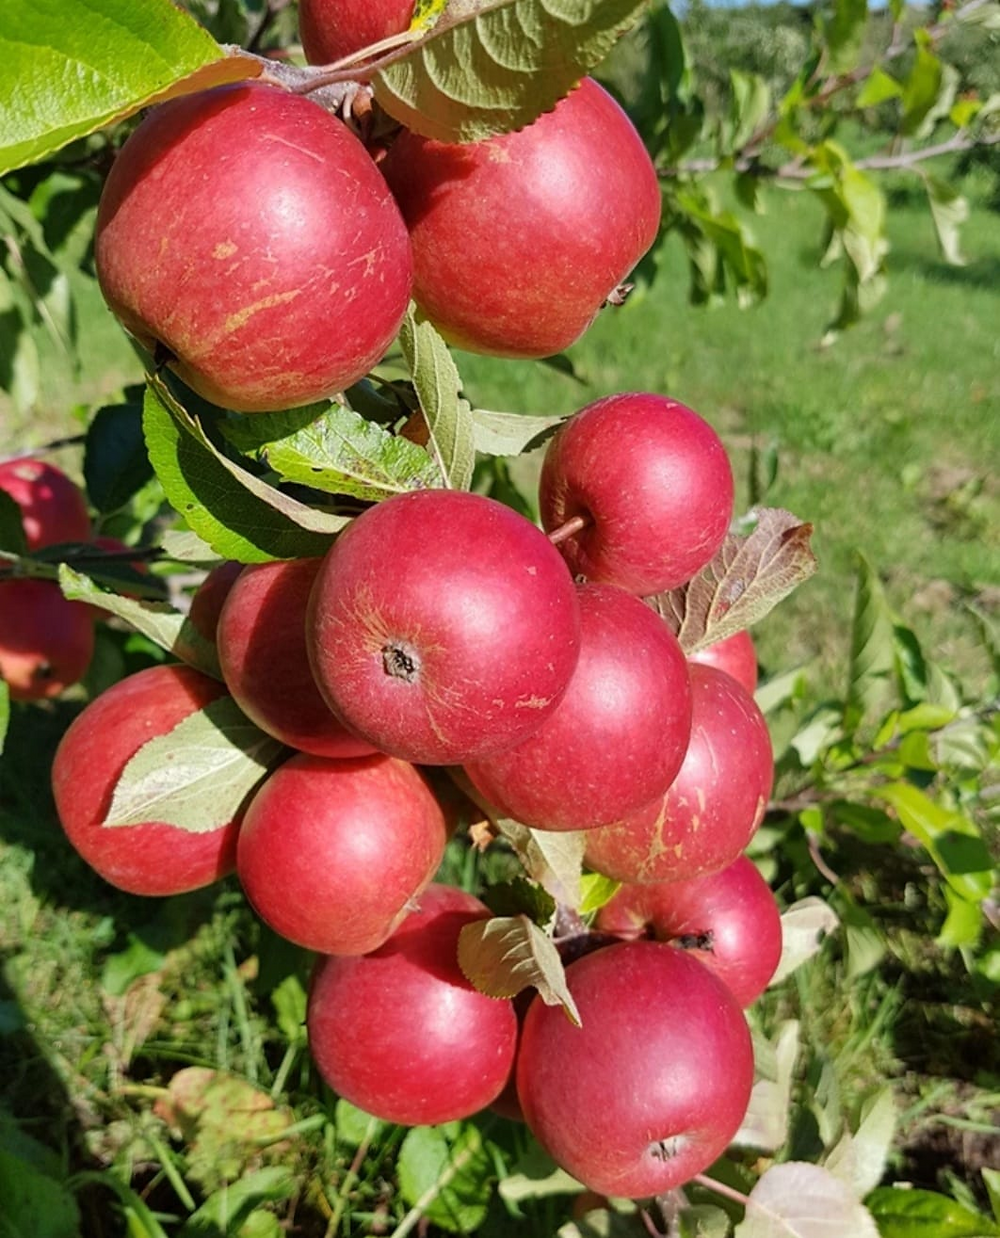 Ripe apples in an orchard